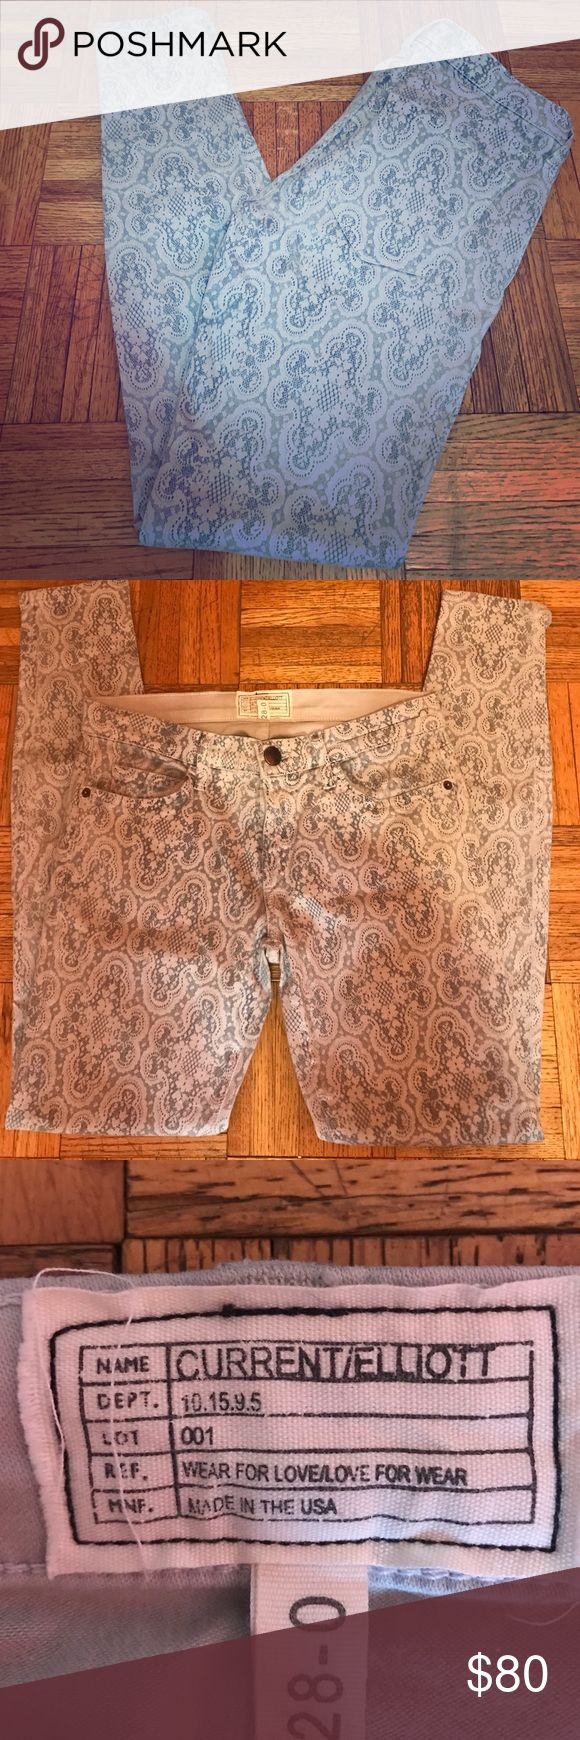 """Current/Elliot Lace Print Skinny Jeans Size 28-0 Current/Elliot gray Lace Print Skinny jeans. They are low rise and ankle skinny. In great condition. Size 28-0... Inseam approximately 29"""" Current/Elliott Jeans Skinny"""